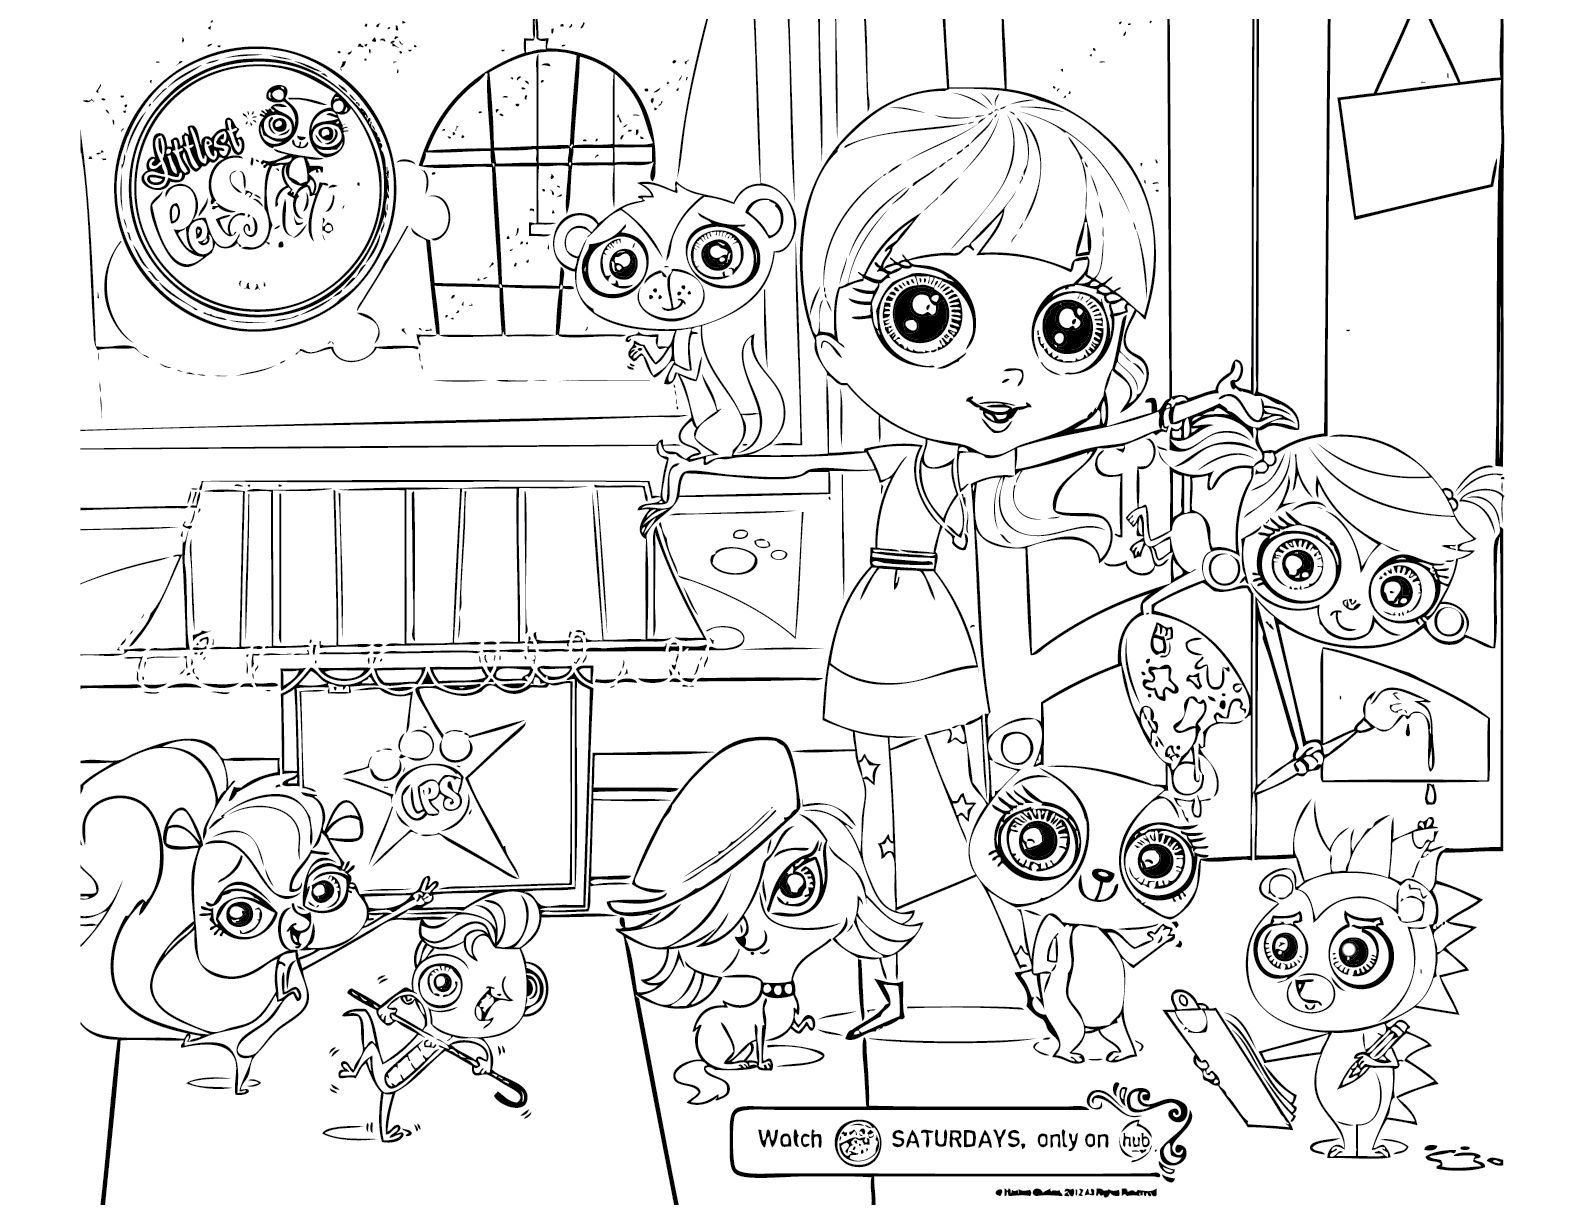 Free coloring pages littlest pet shop - My Littlest Pet Shop Coloring Pages Free Printable Coloring Pages